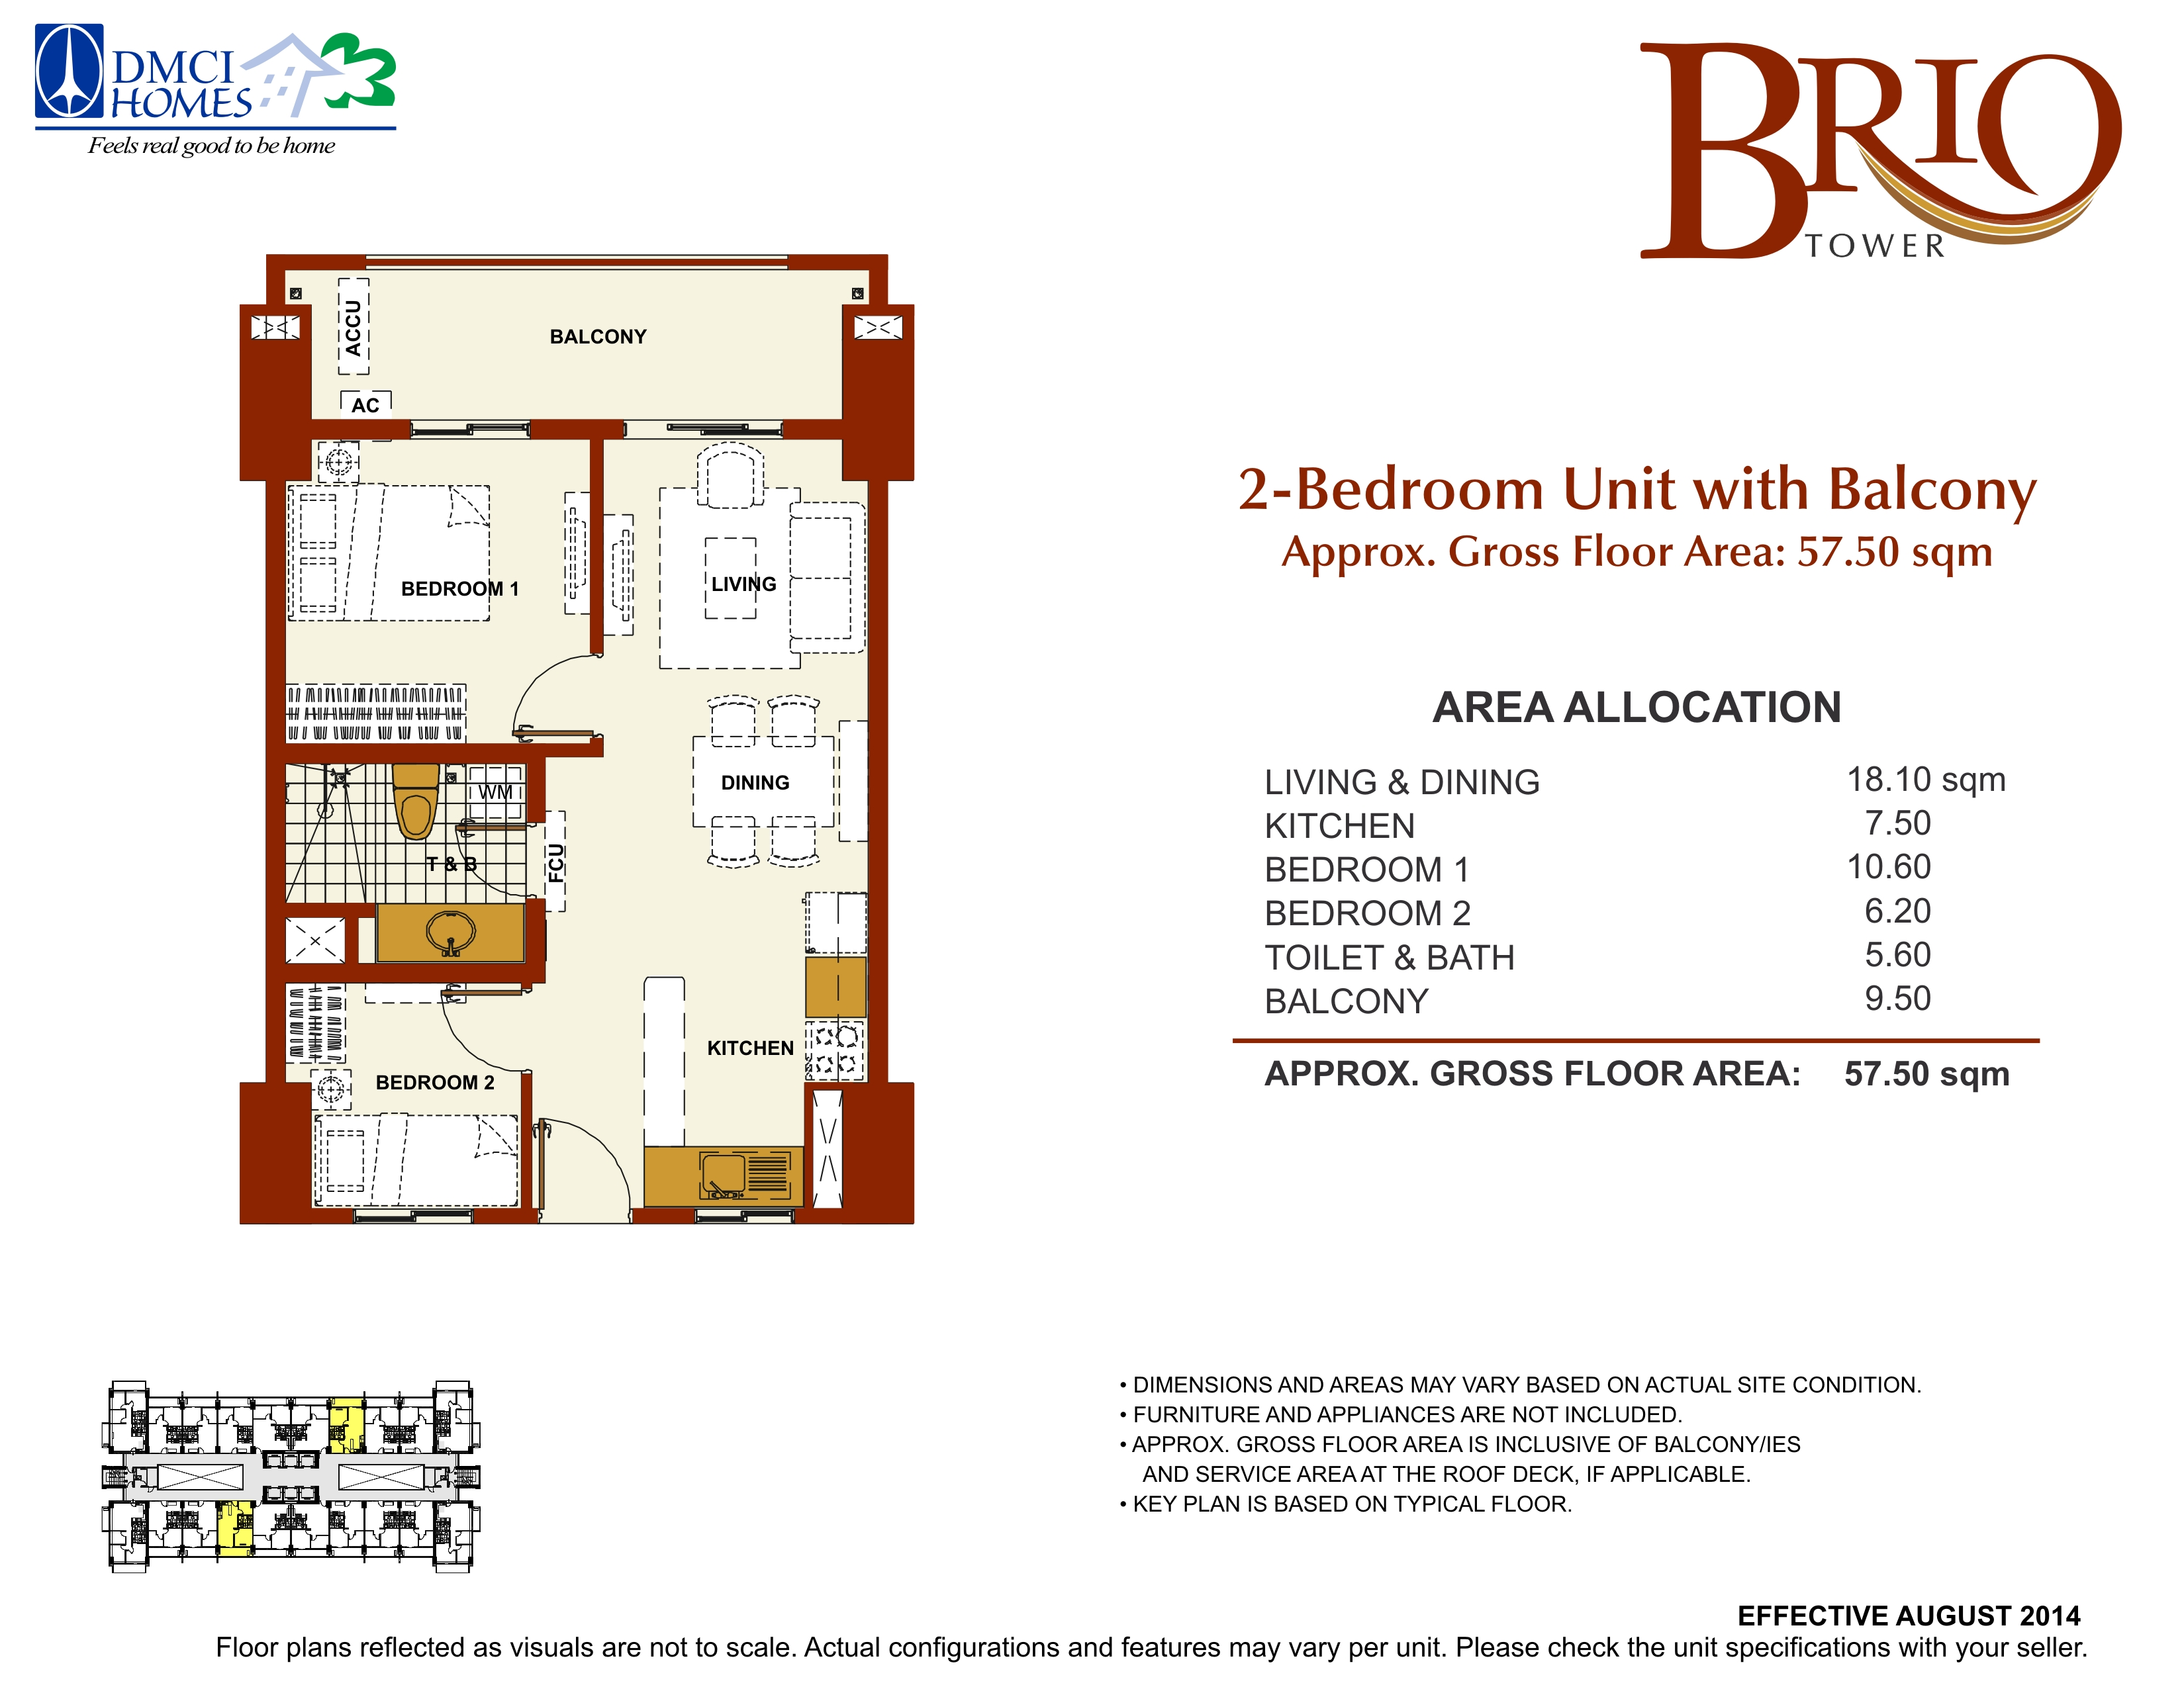 brio-tower-2br-unit-with-balcony-4